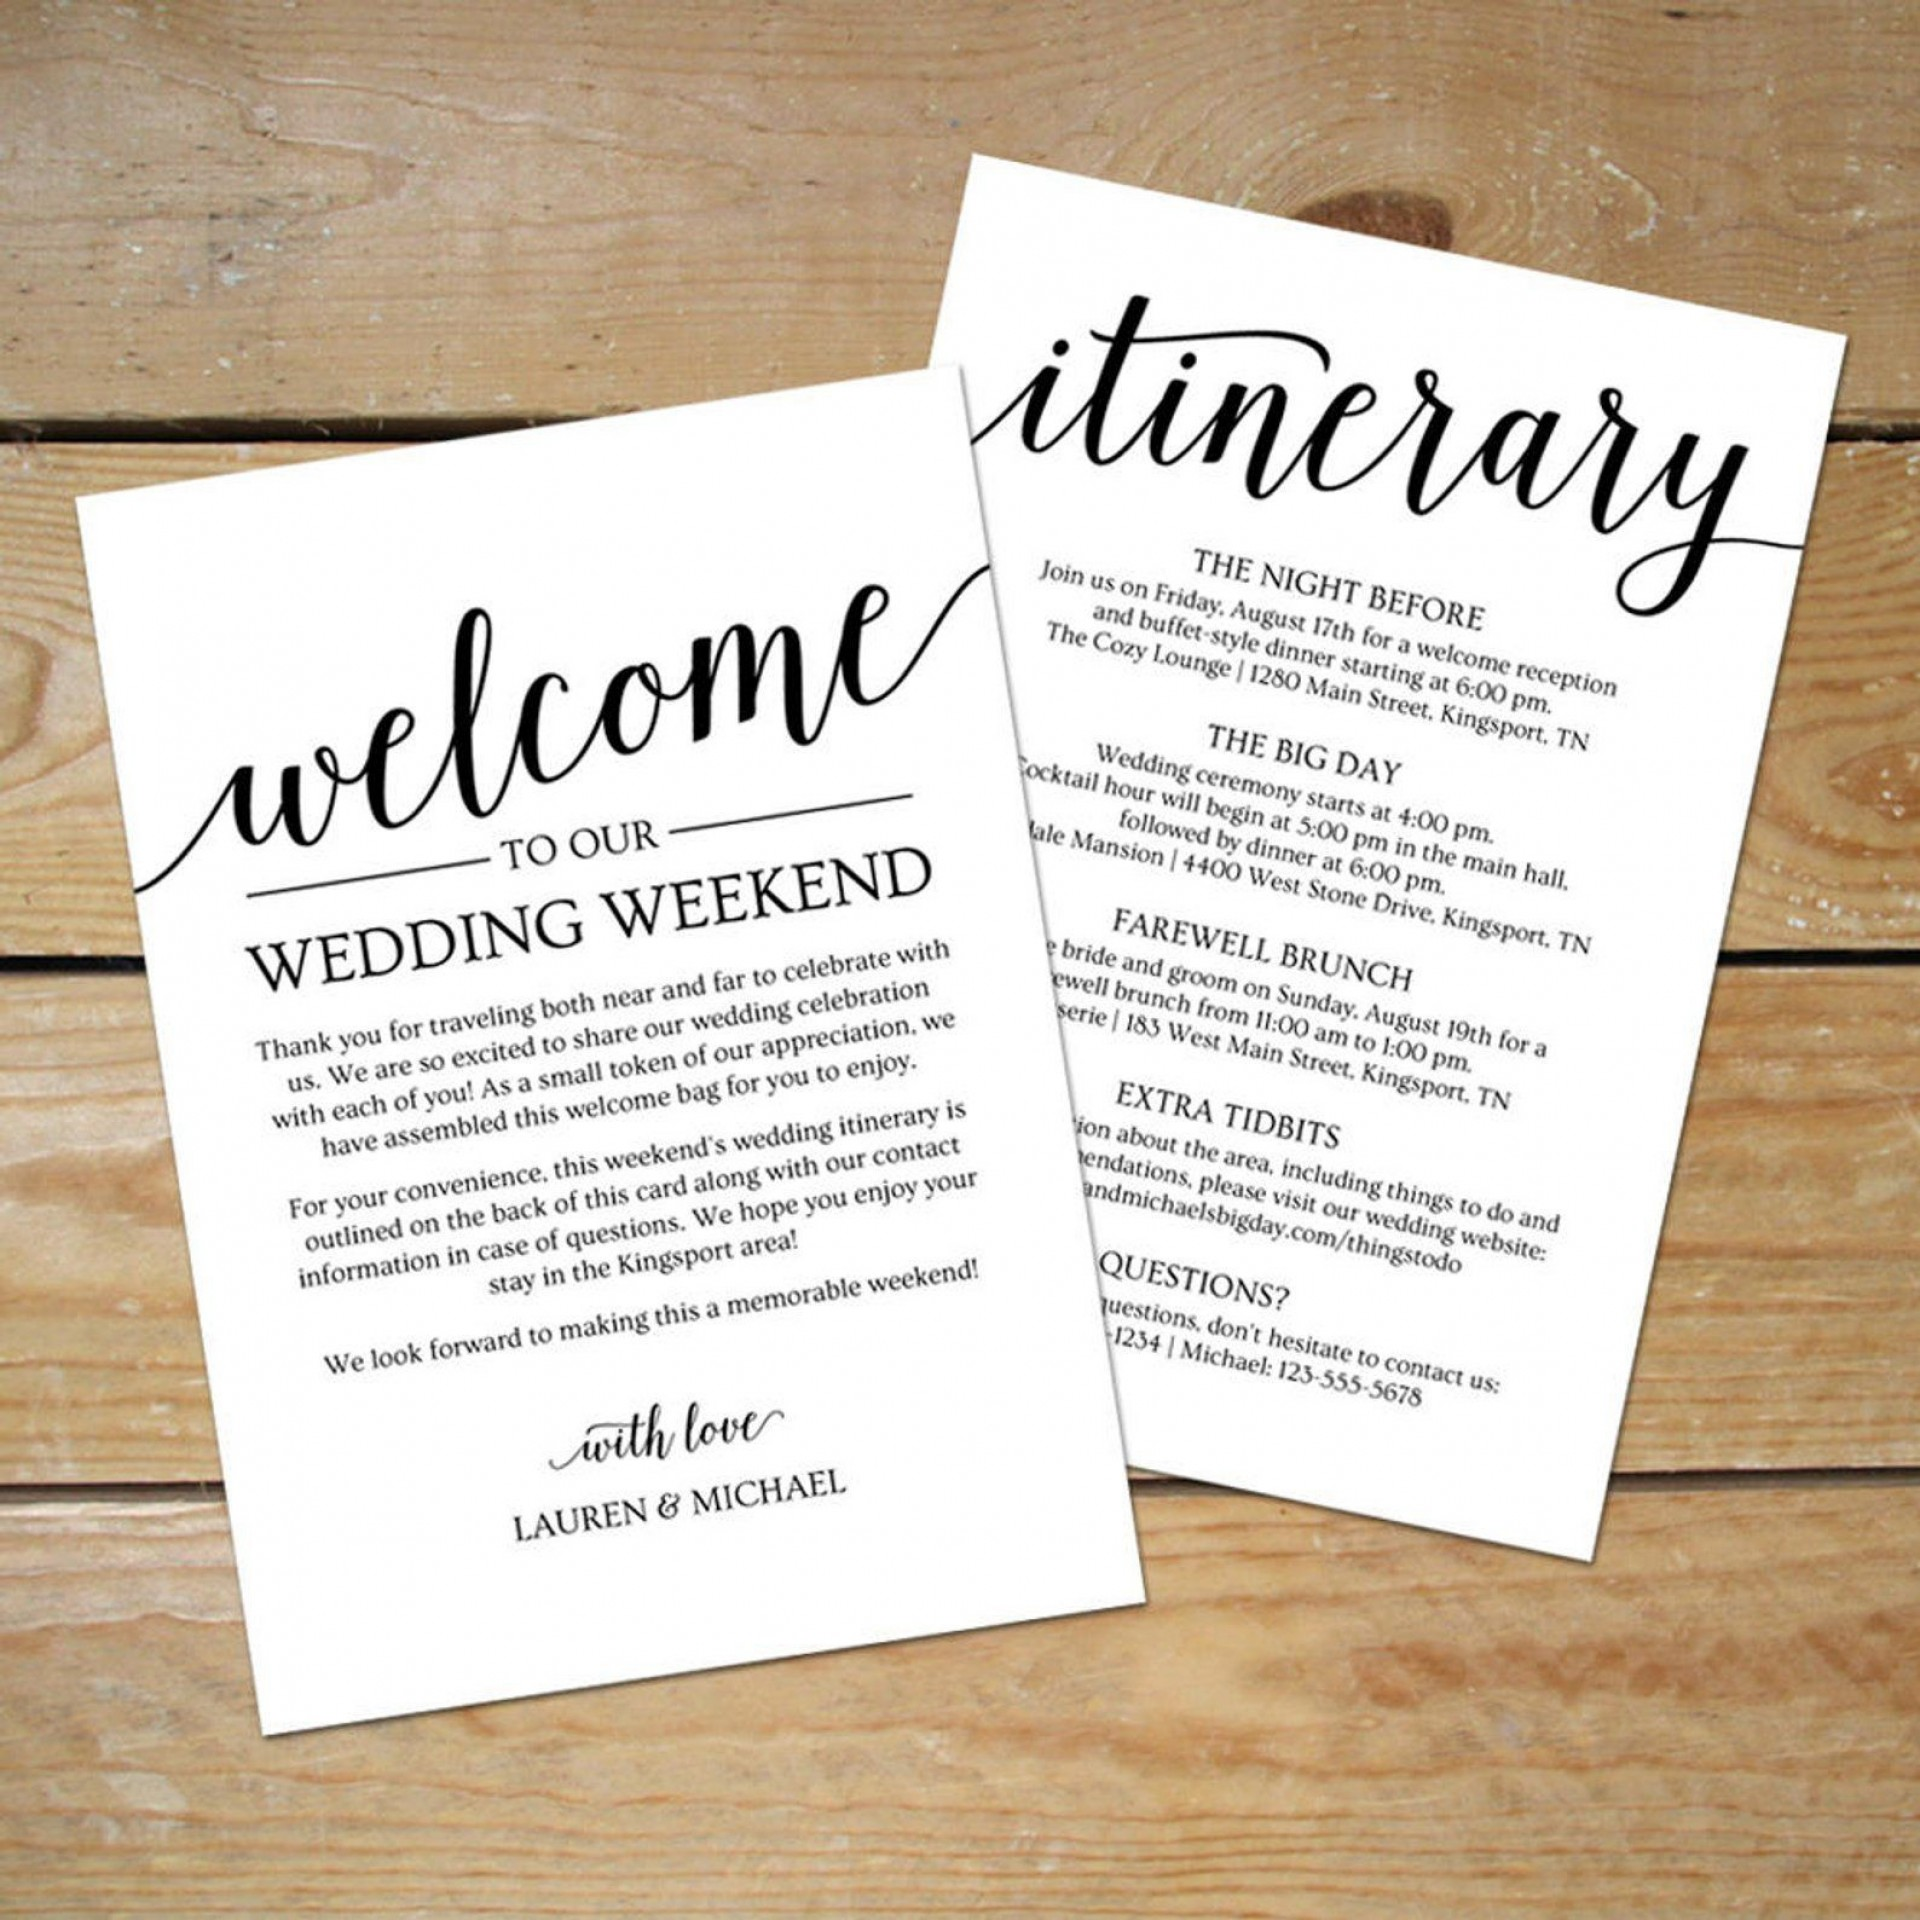 003 Shocking Destination Wedding Welcome Letter And Itinerary Template Image 1920